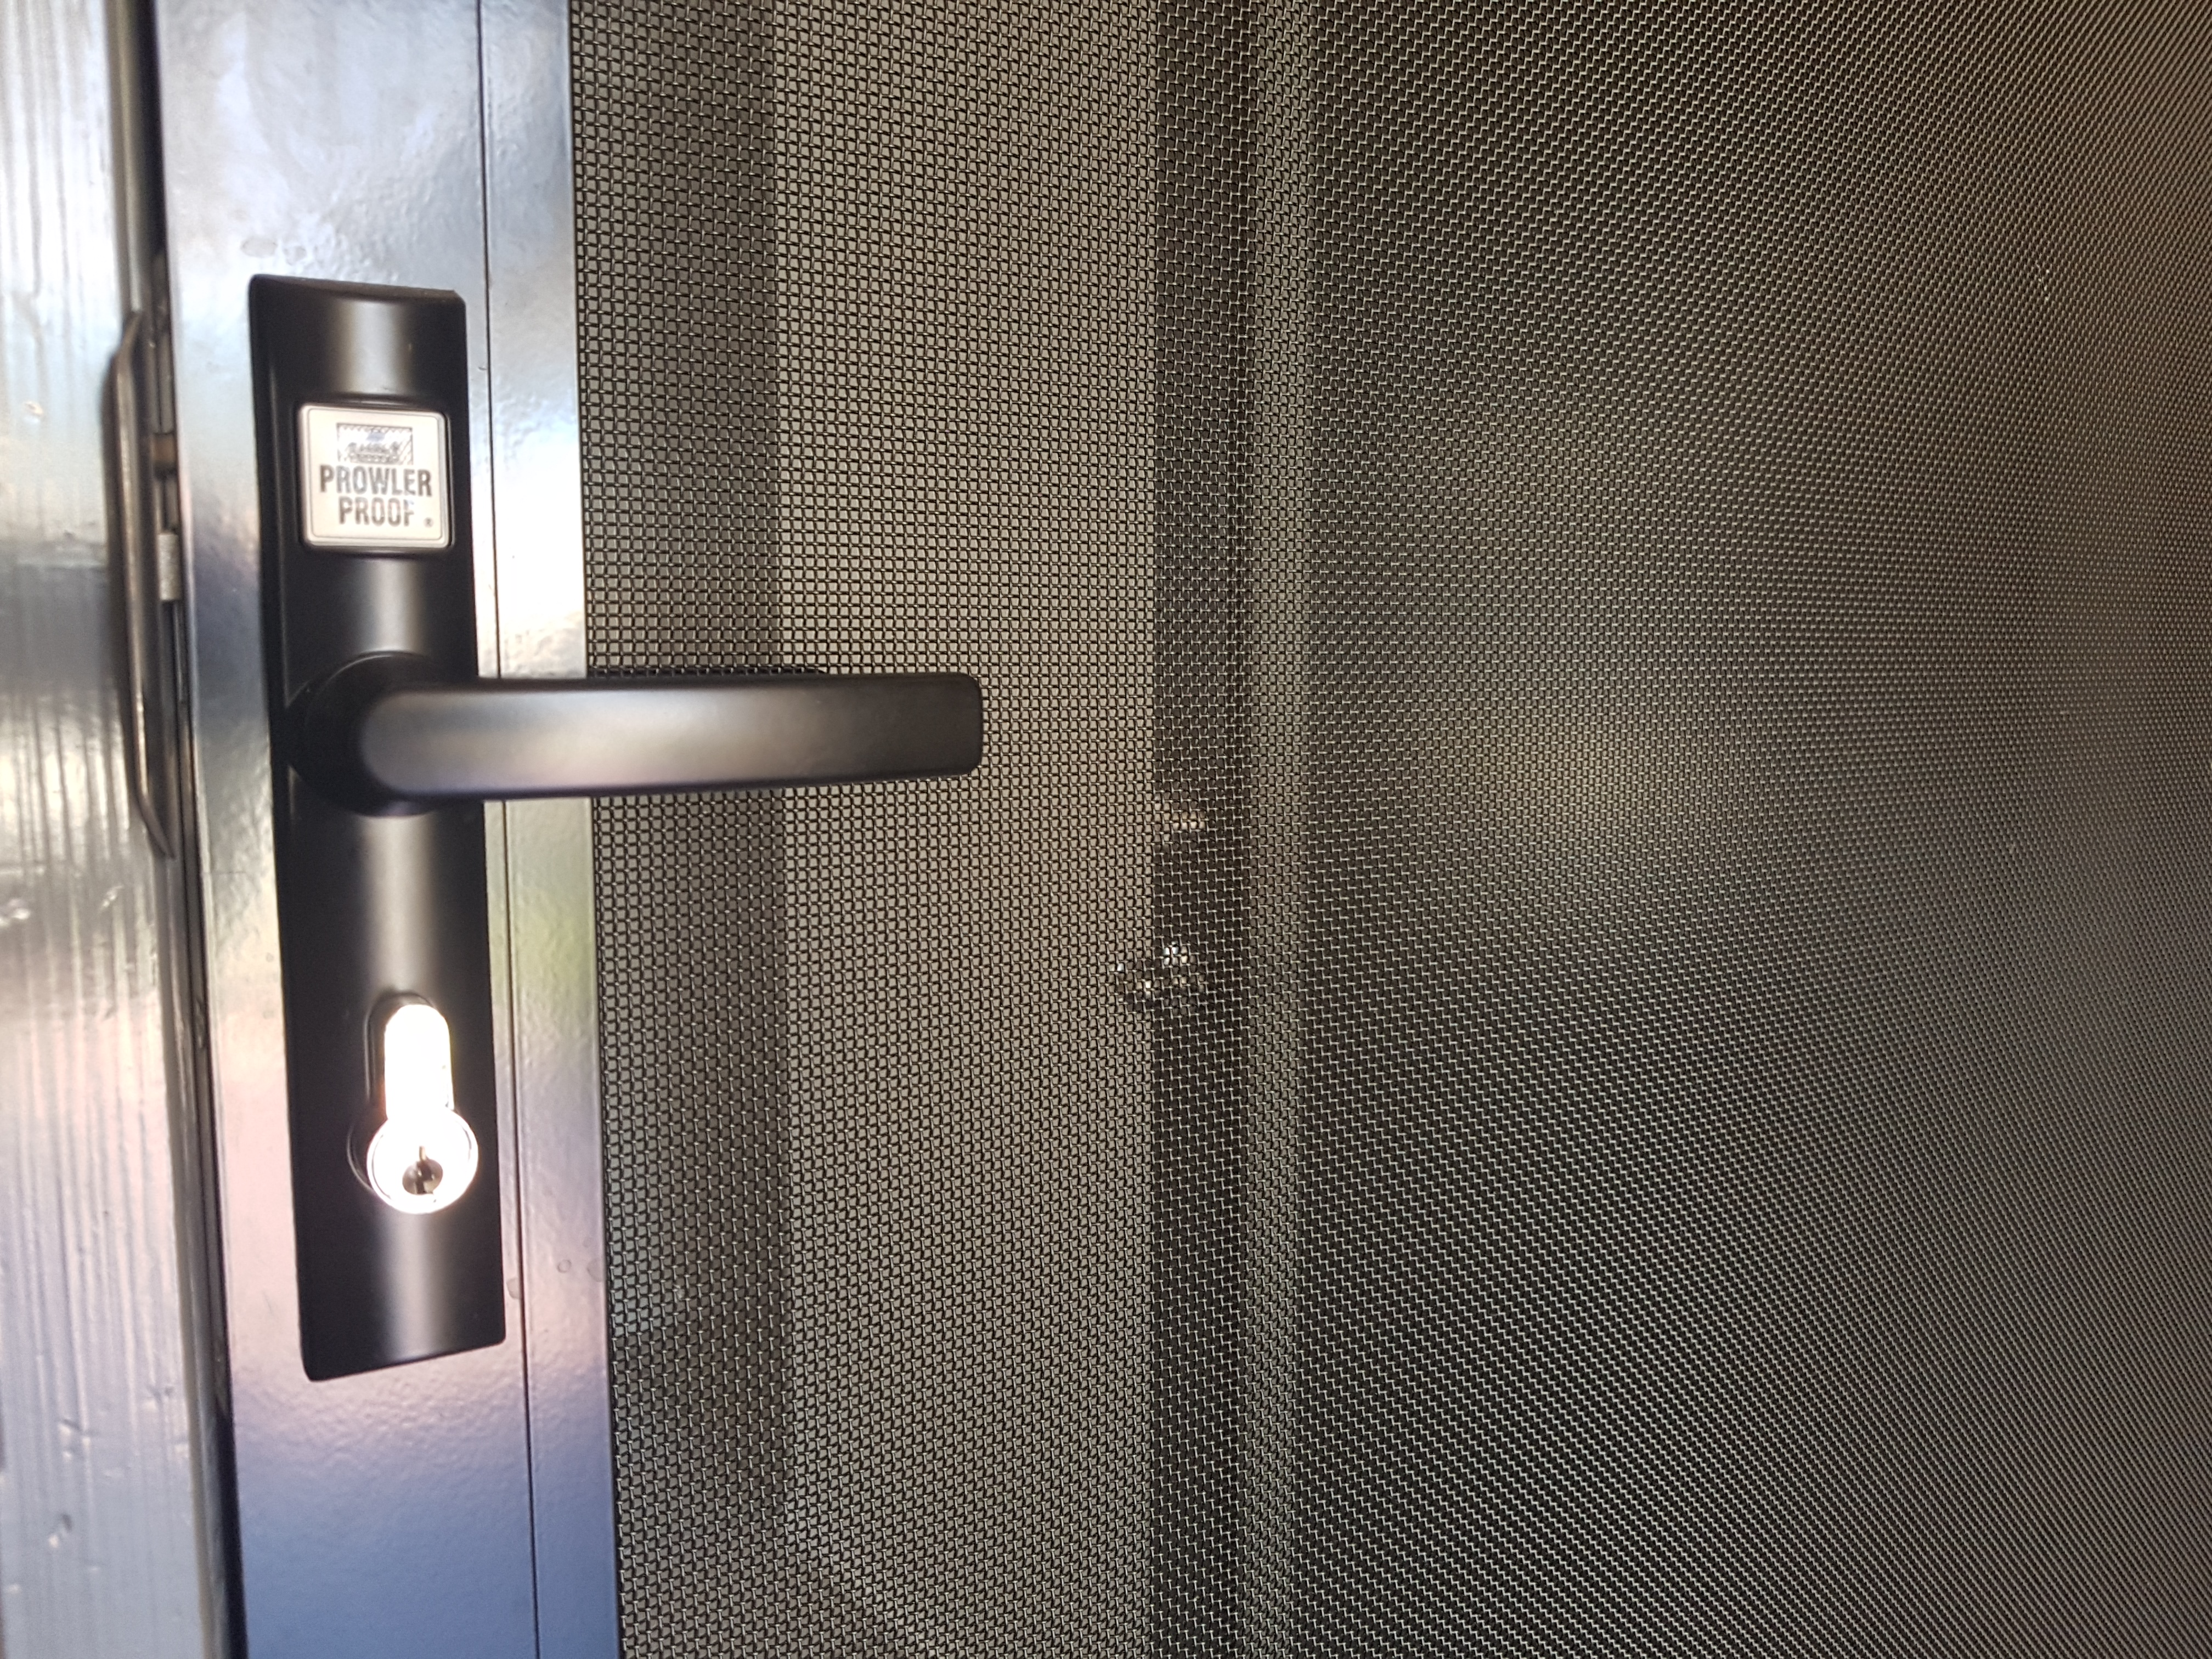 All security doors come standard with triple locks